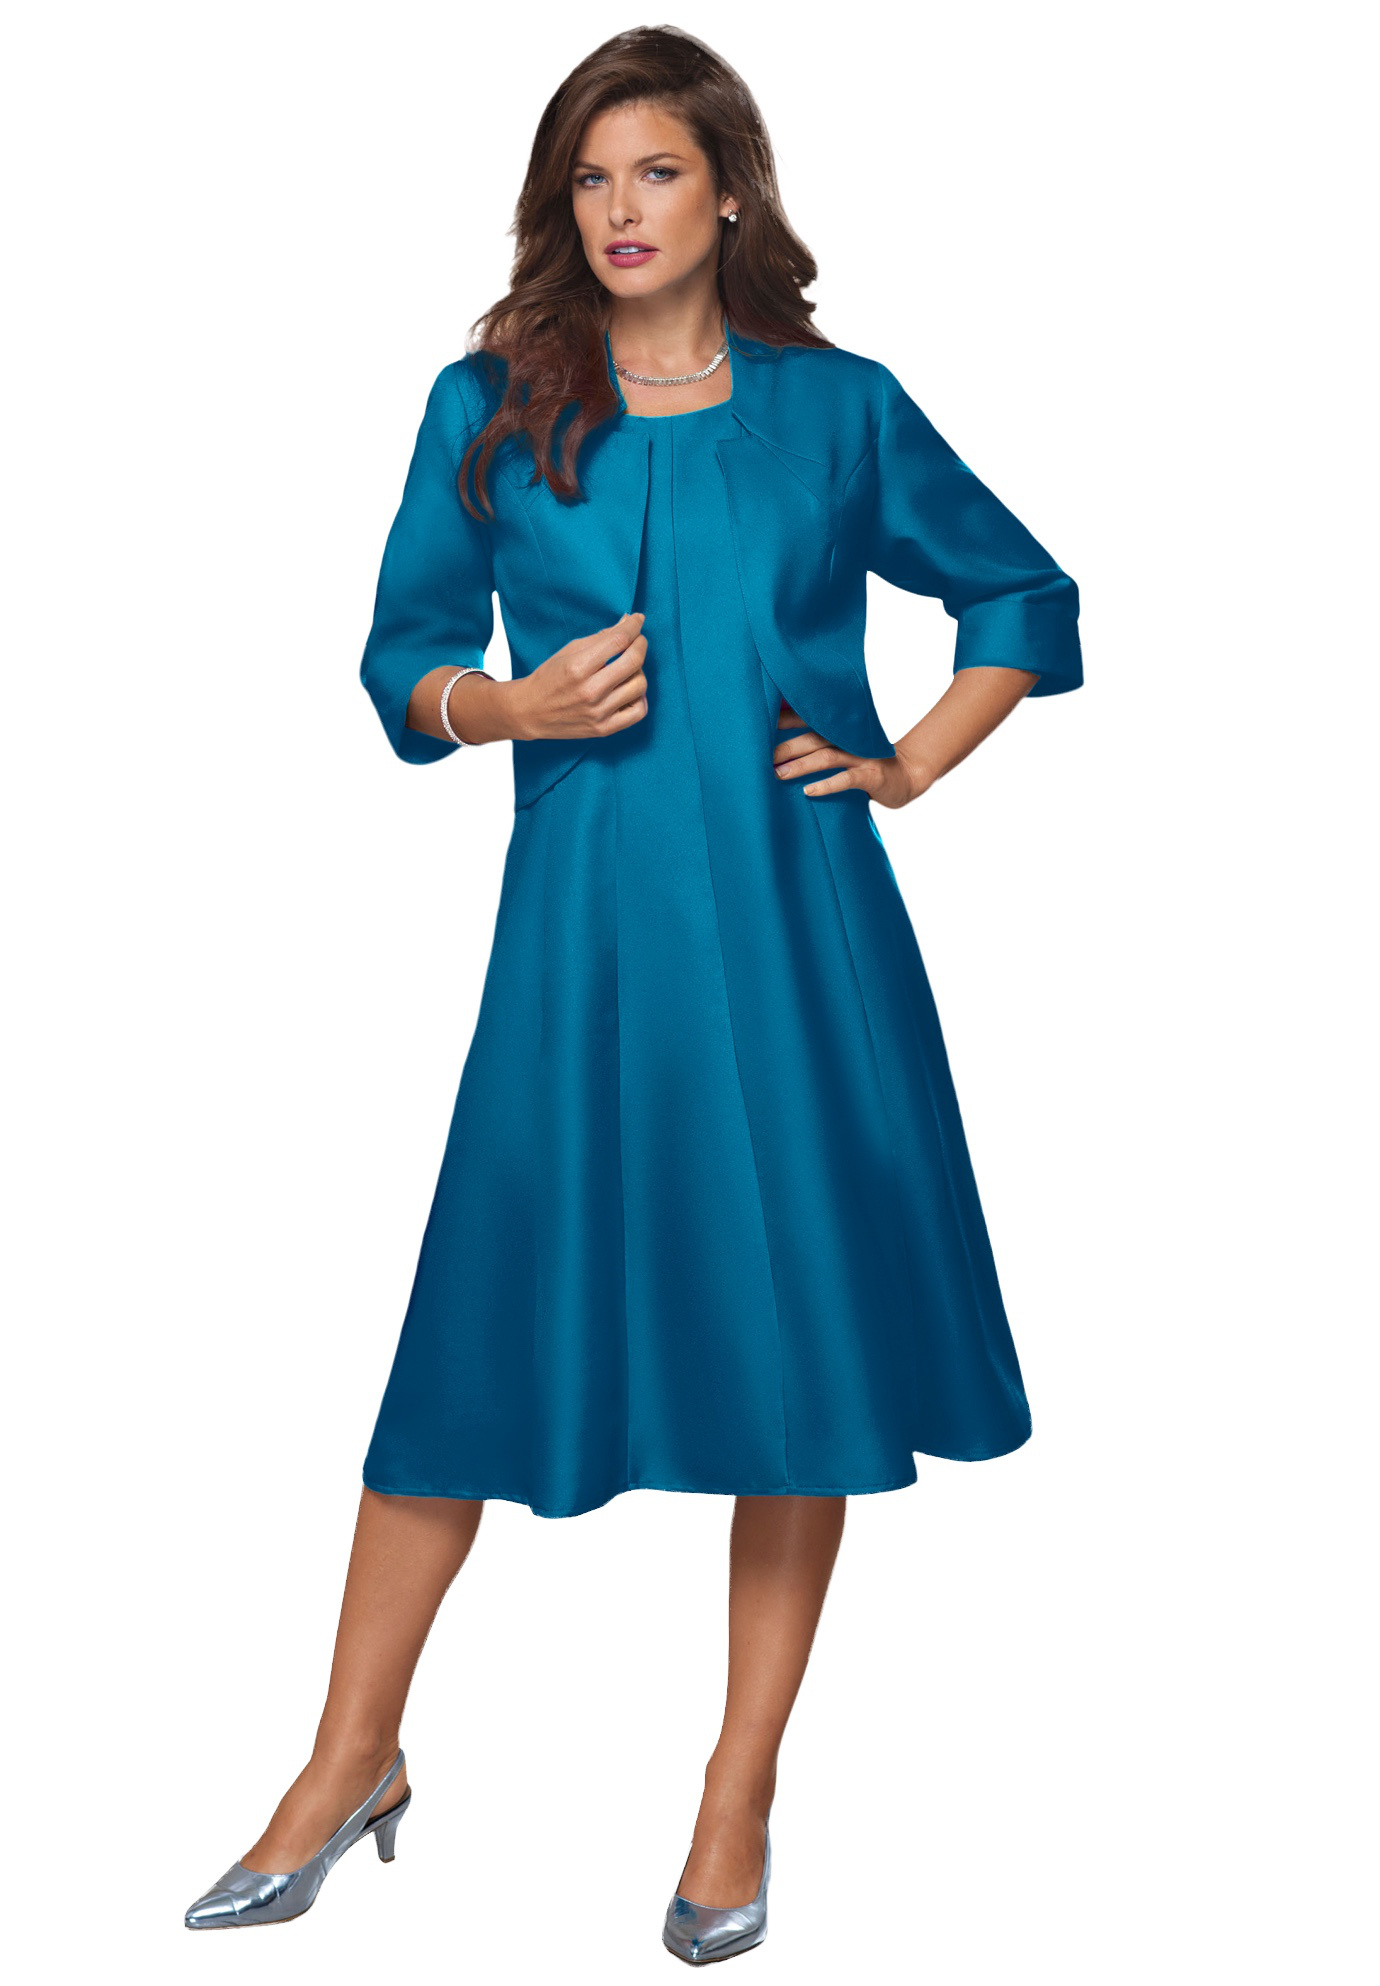 Plus Size Women's Fit-And-Flare Jacket Dress by Roaman's in Peacock Teal (Size 26 W)